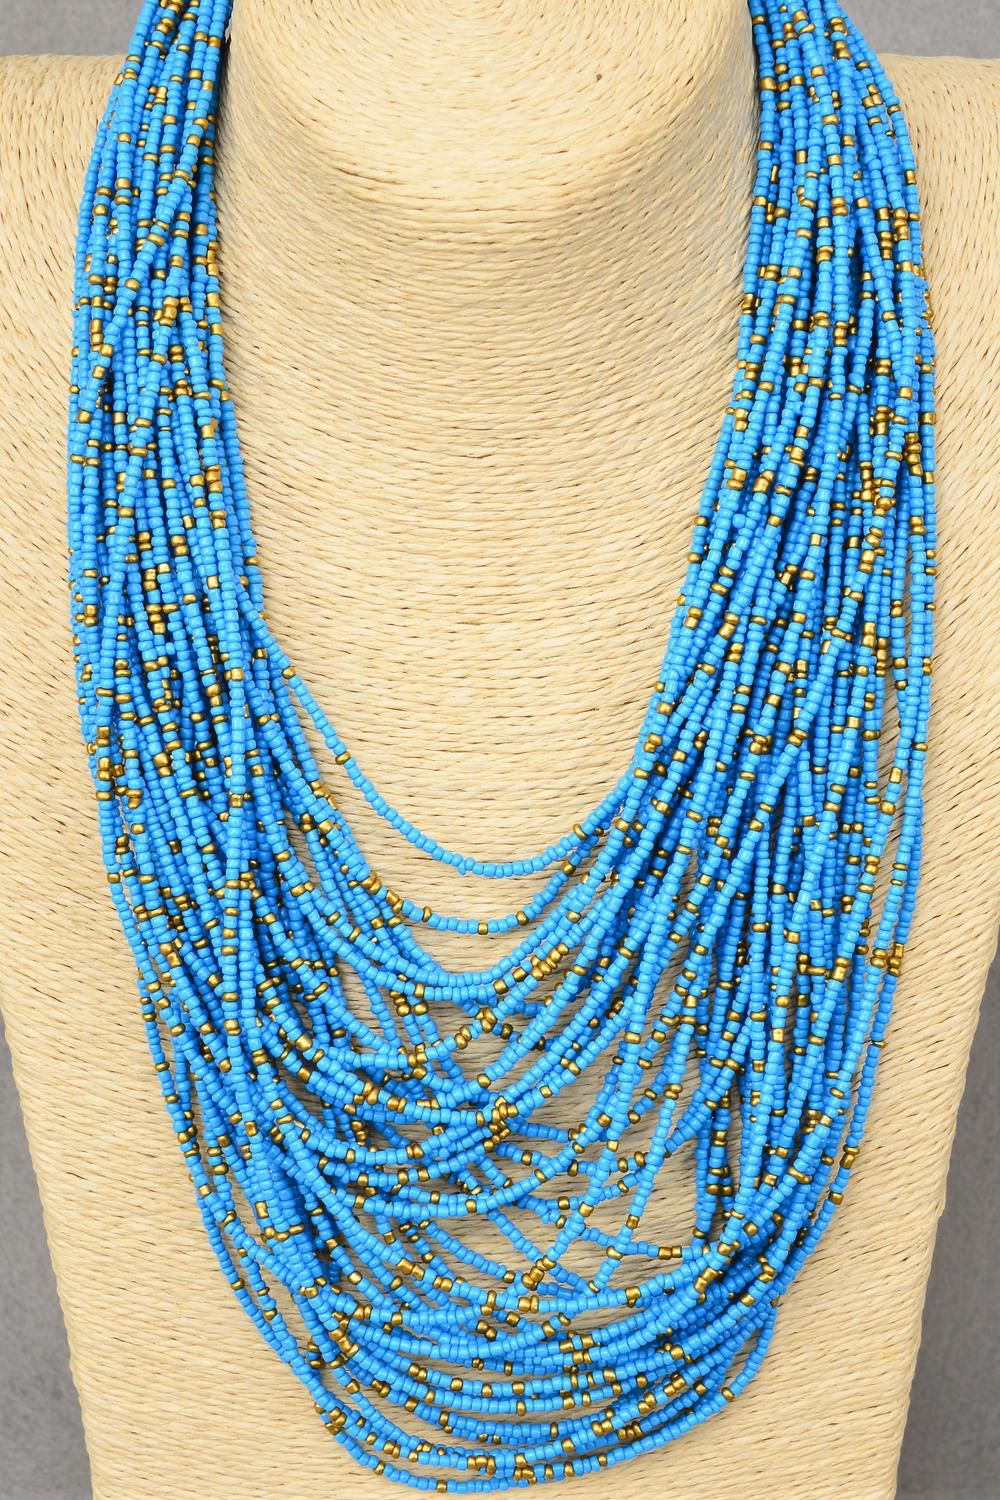 "Necklace Bohemian Like Indian Beads Turquoise/PC **Blue Turquoise** Size-18"" W Extension Chain,Display Card & OPP Bag & UPC Code -"